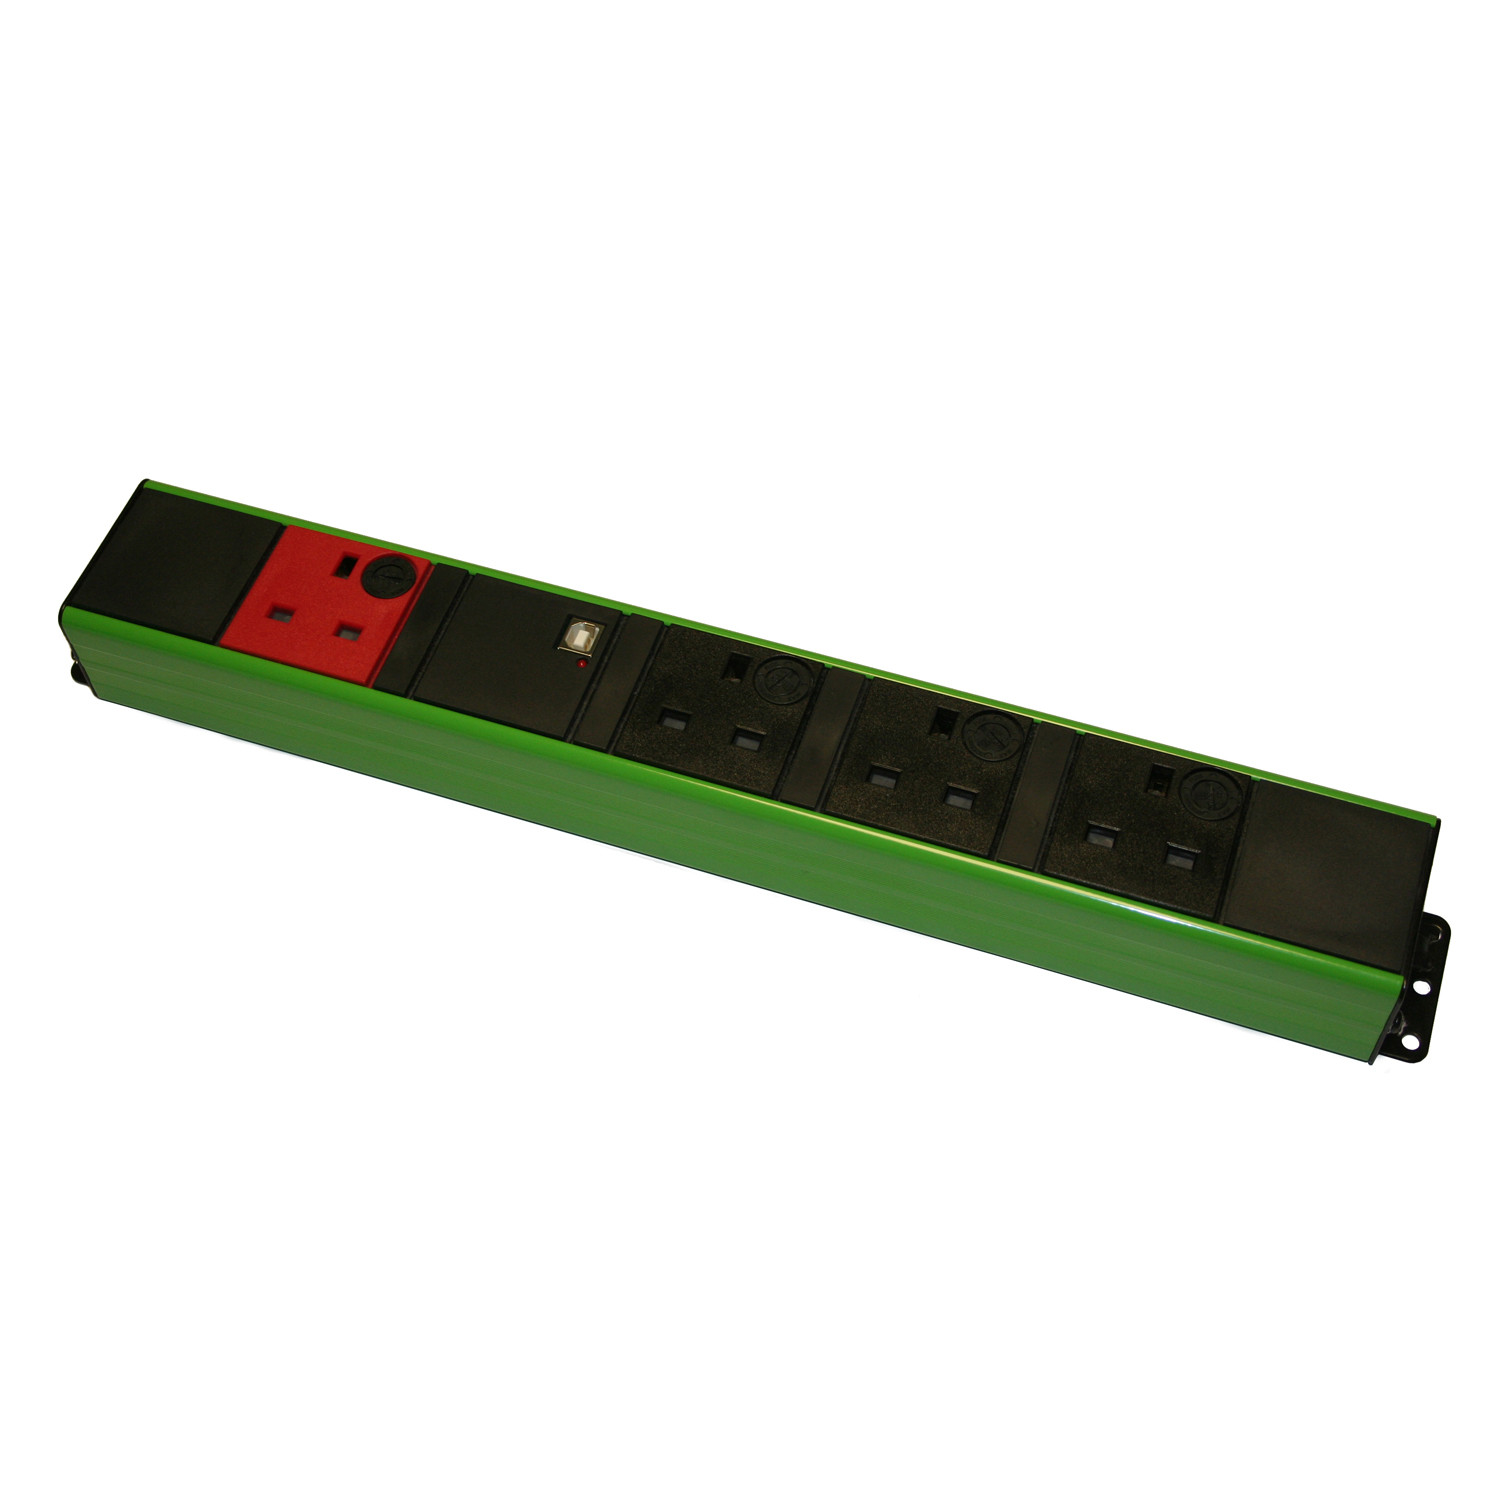 Eco2 Power Module by DPG